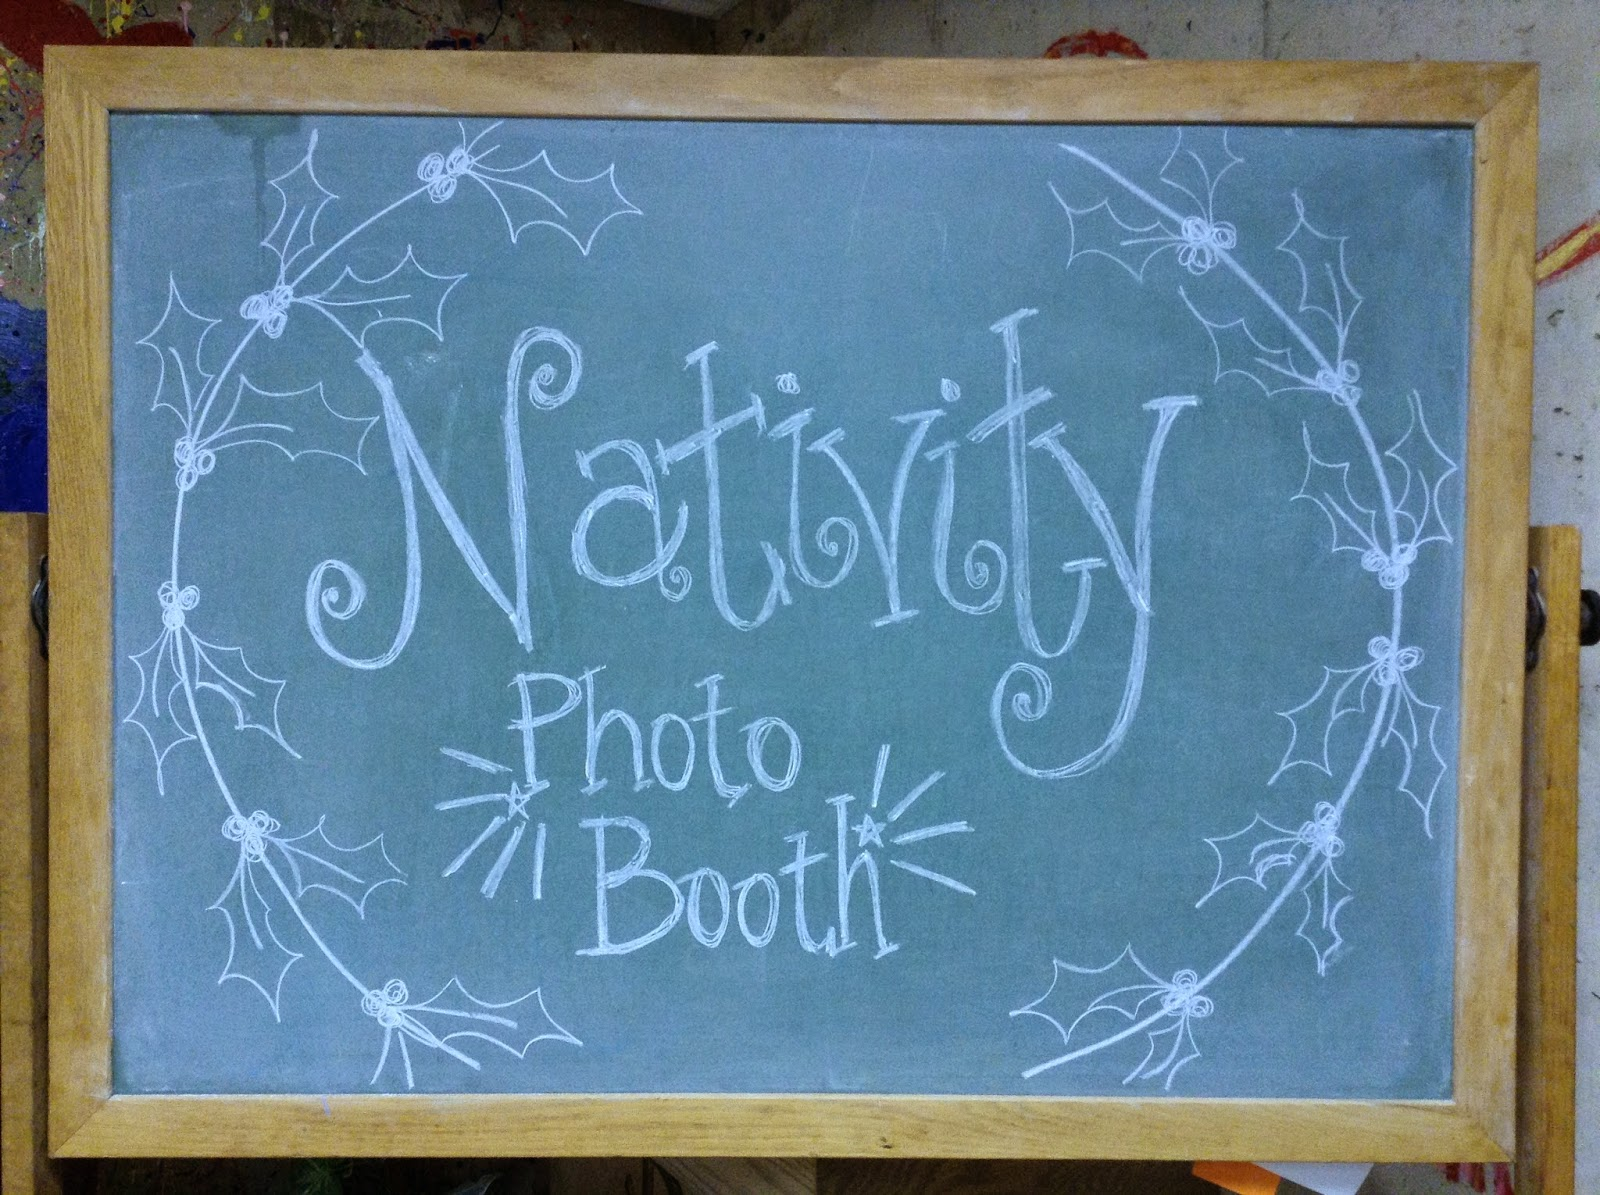 http://looktohimandberadiant.blogspot.com/2013/12/nativity-photo-booth.html